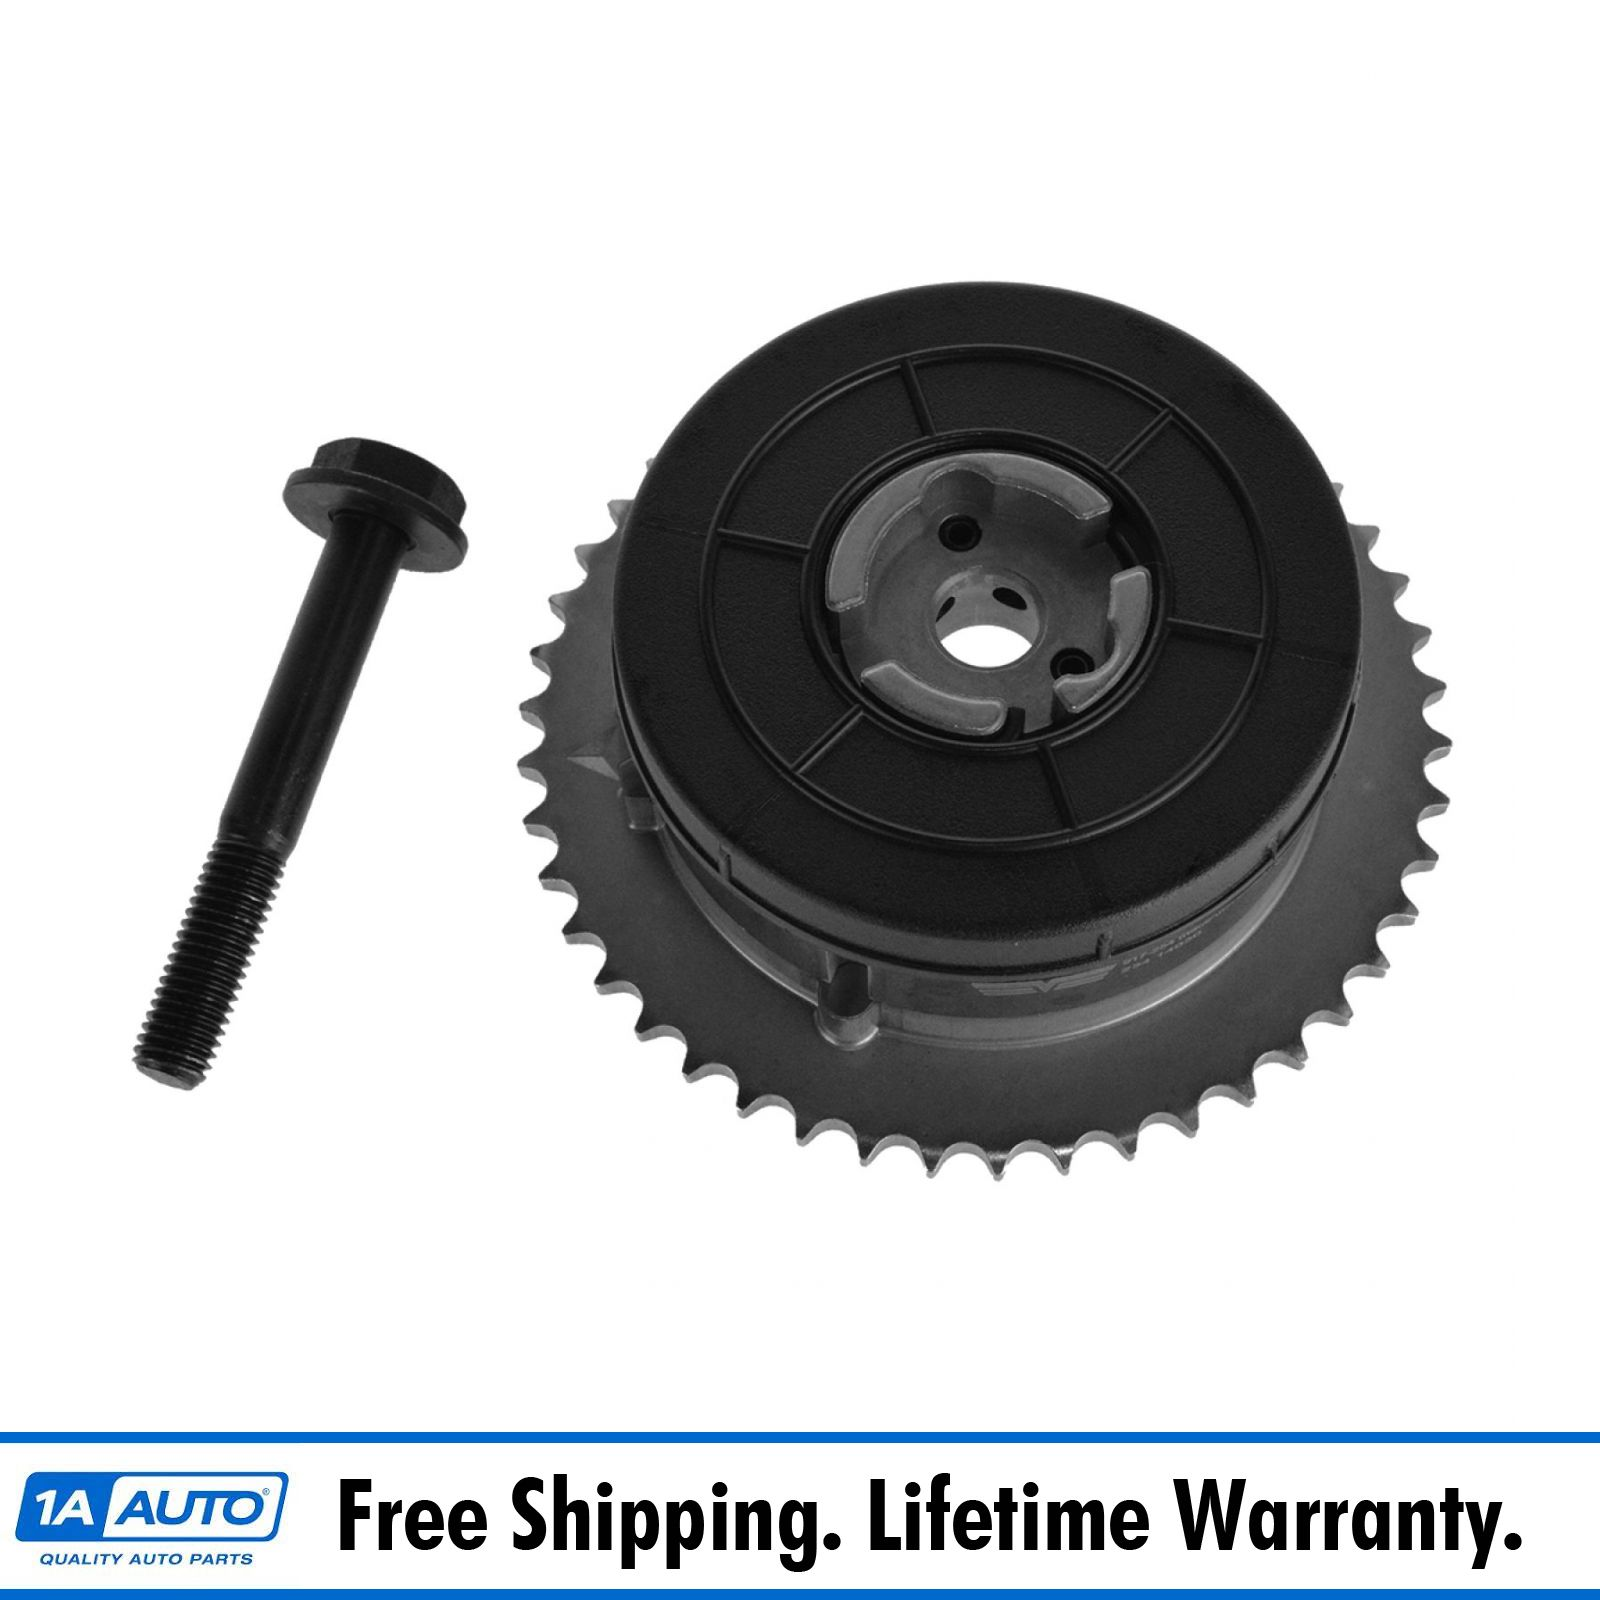 2001 Buick Lesabre Camshaft: Exhaust Camshaft VVT Actuator Sprocket For Buick Chevy GMC